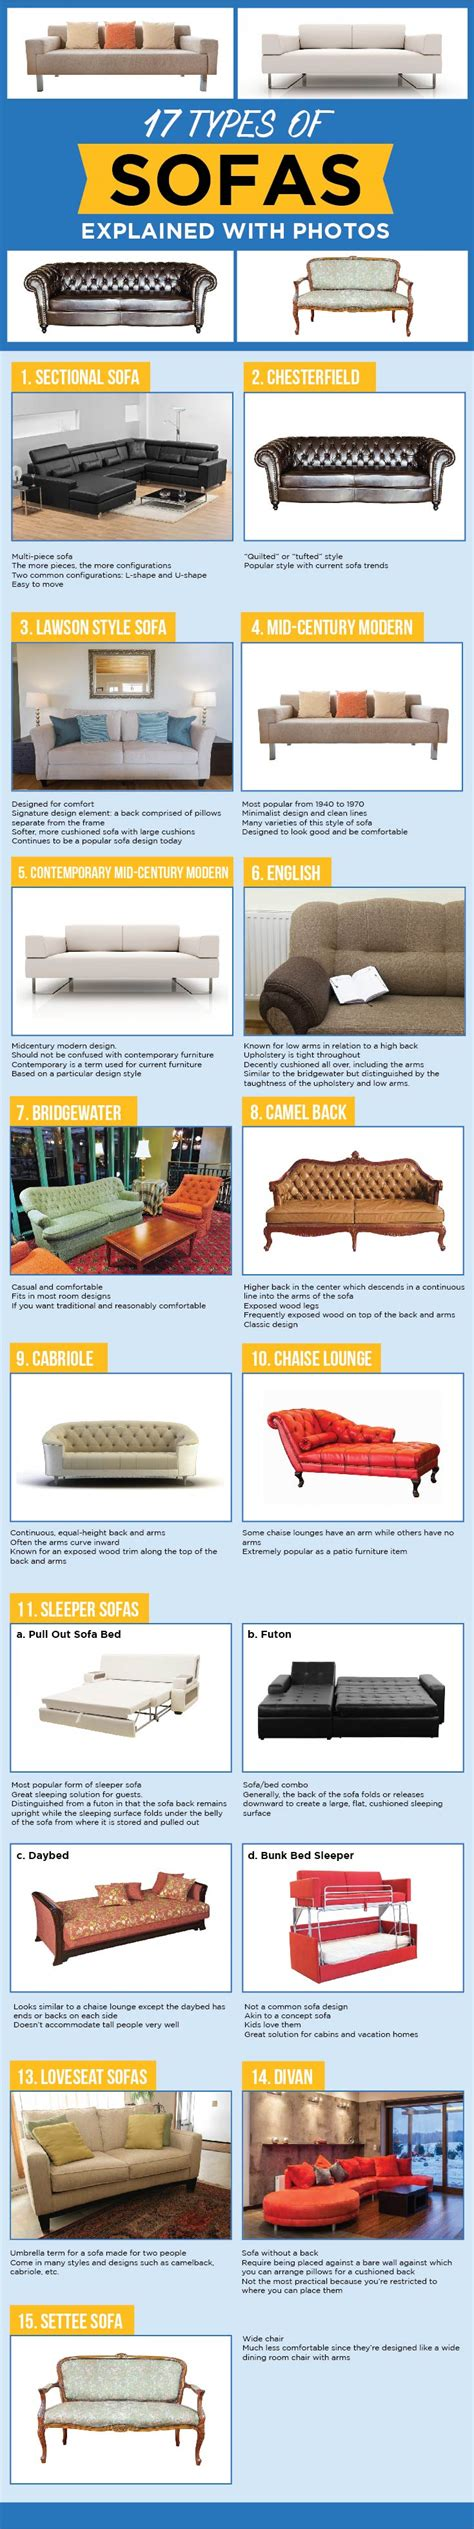 Types Of Couches Names by Names Of Sofas 20 Types Of Sofas Couches Explained With